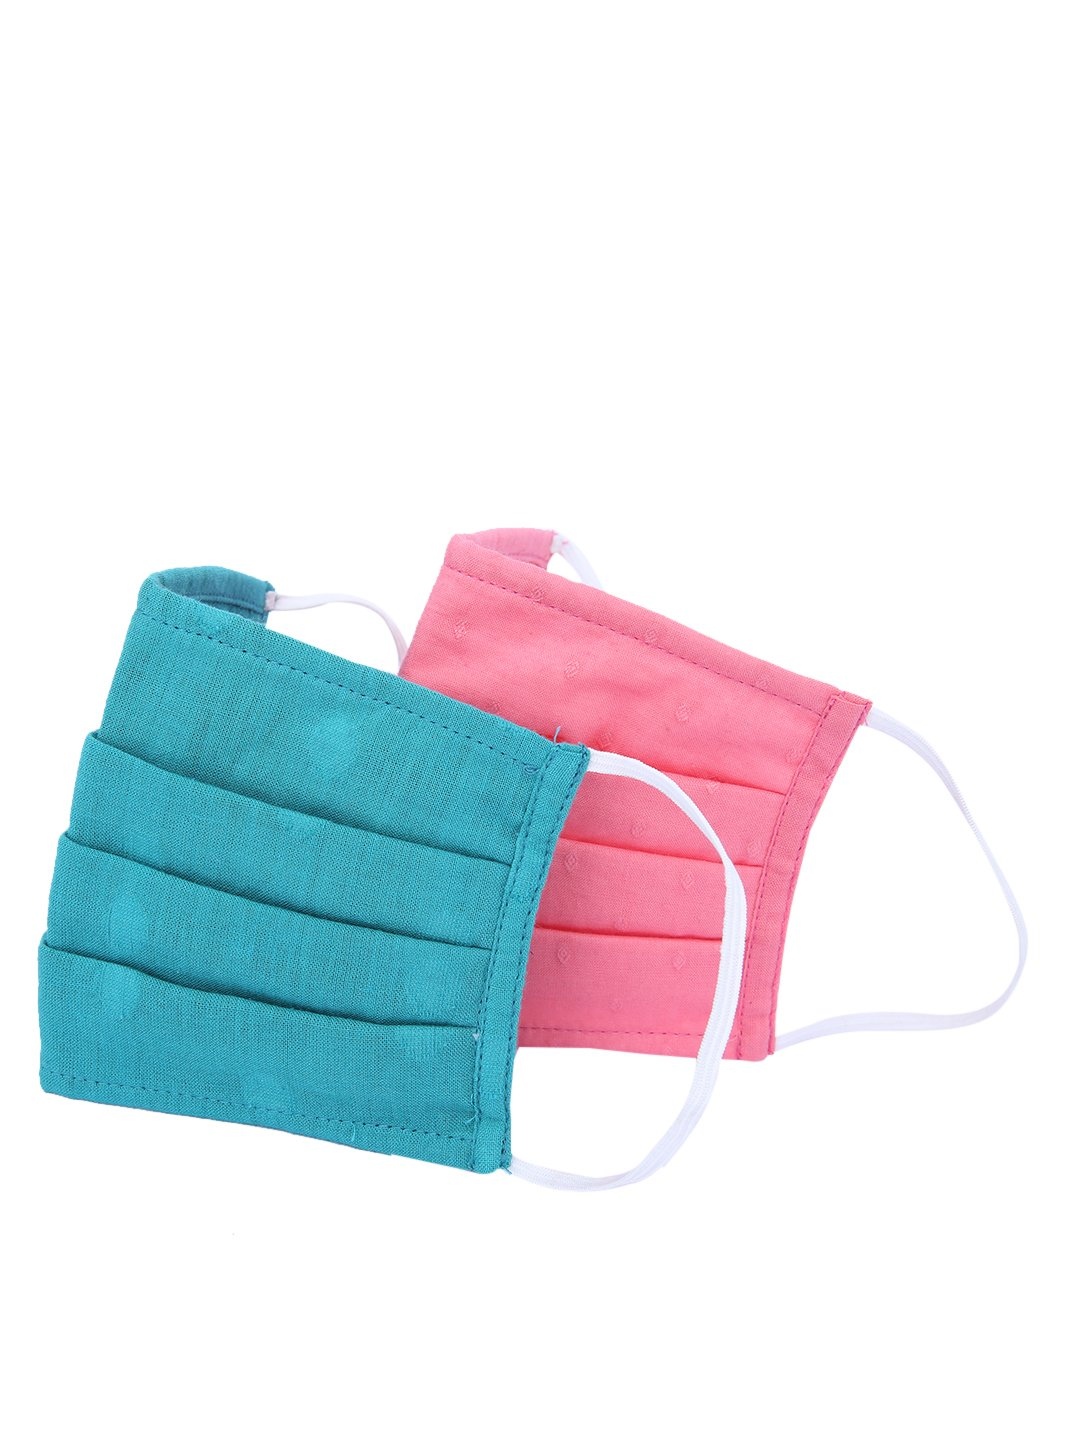 Fabnest   Fabnest Unisex Cotton 3 Ply Blue and Pink Solid Dobby Comfortable Face Masks (Pack Of 2)